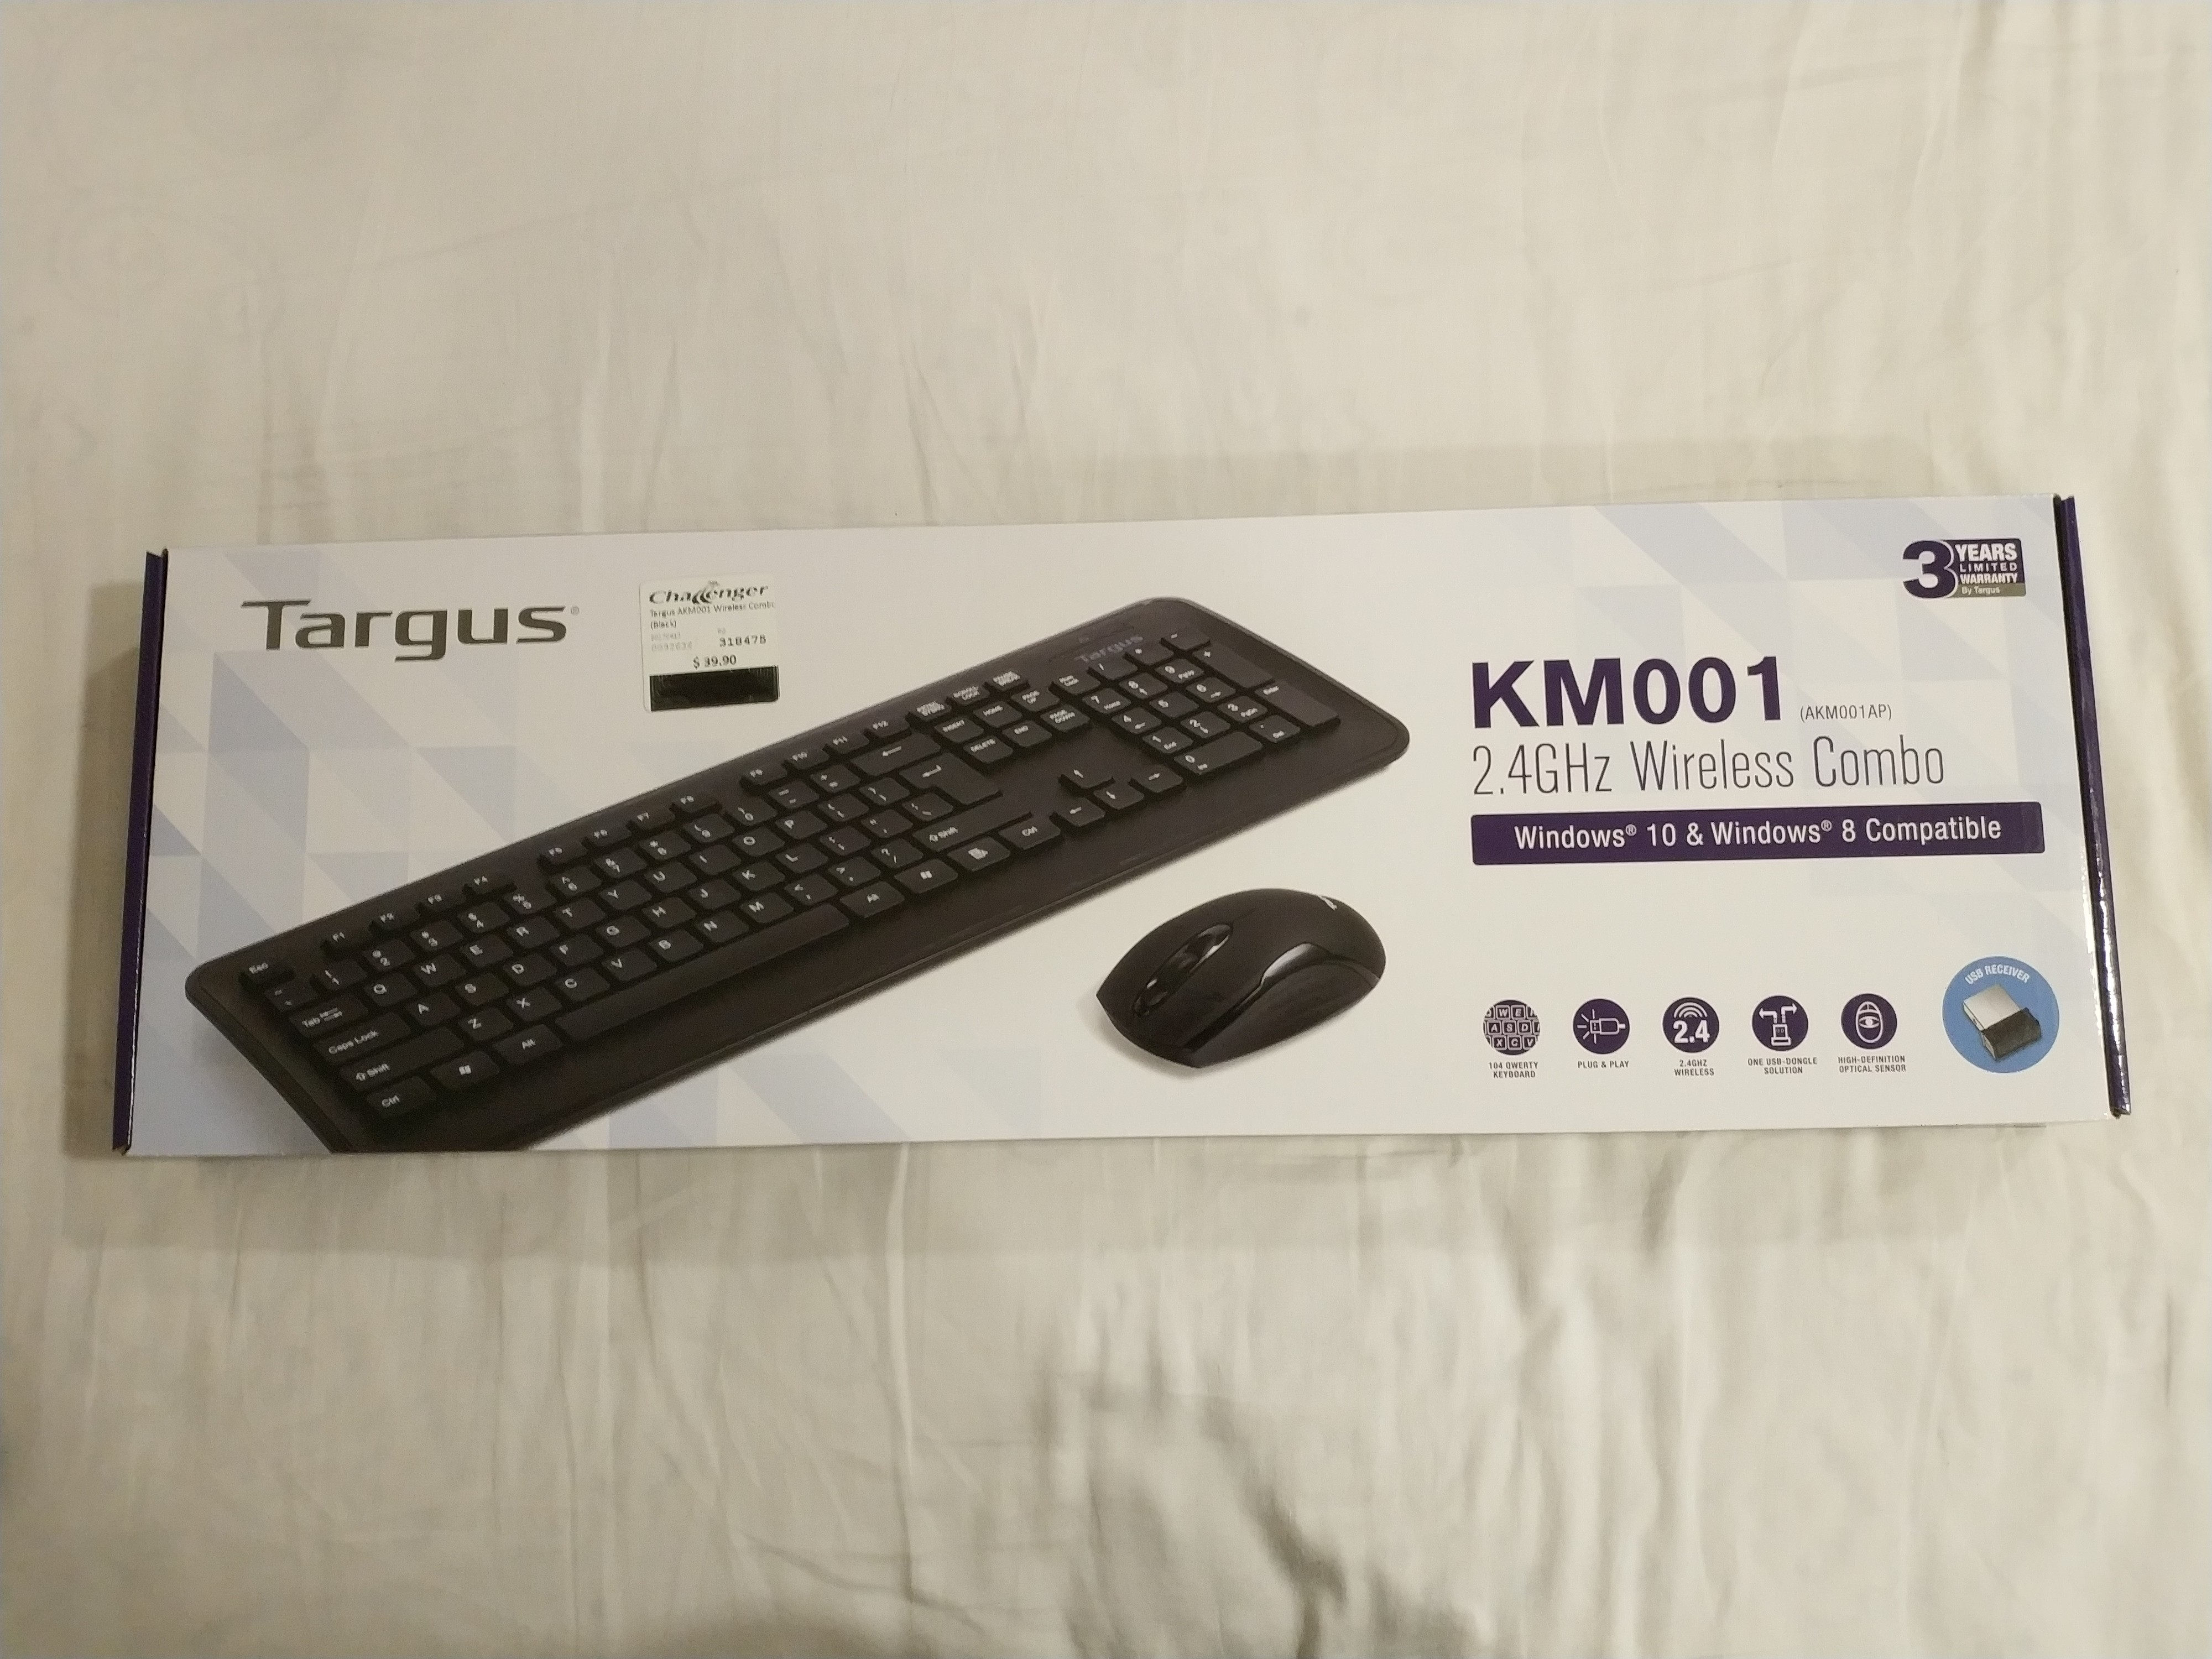 563ecf9a058 Selling Targus KM001 Wireless Keyboard and Mouse, Electronics ...